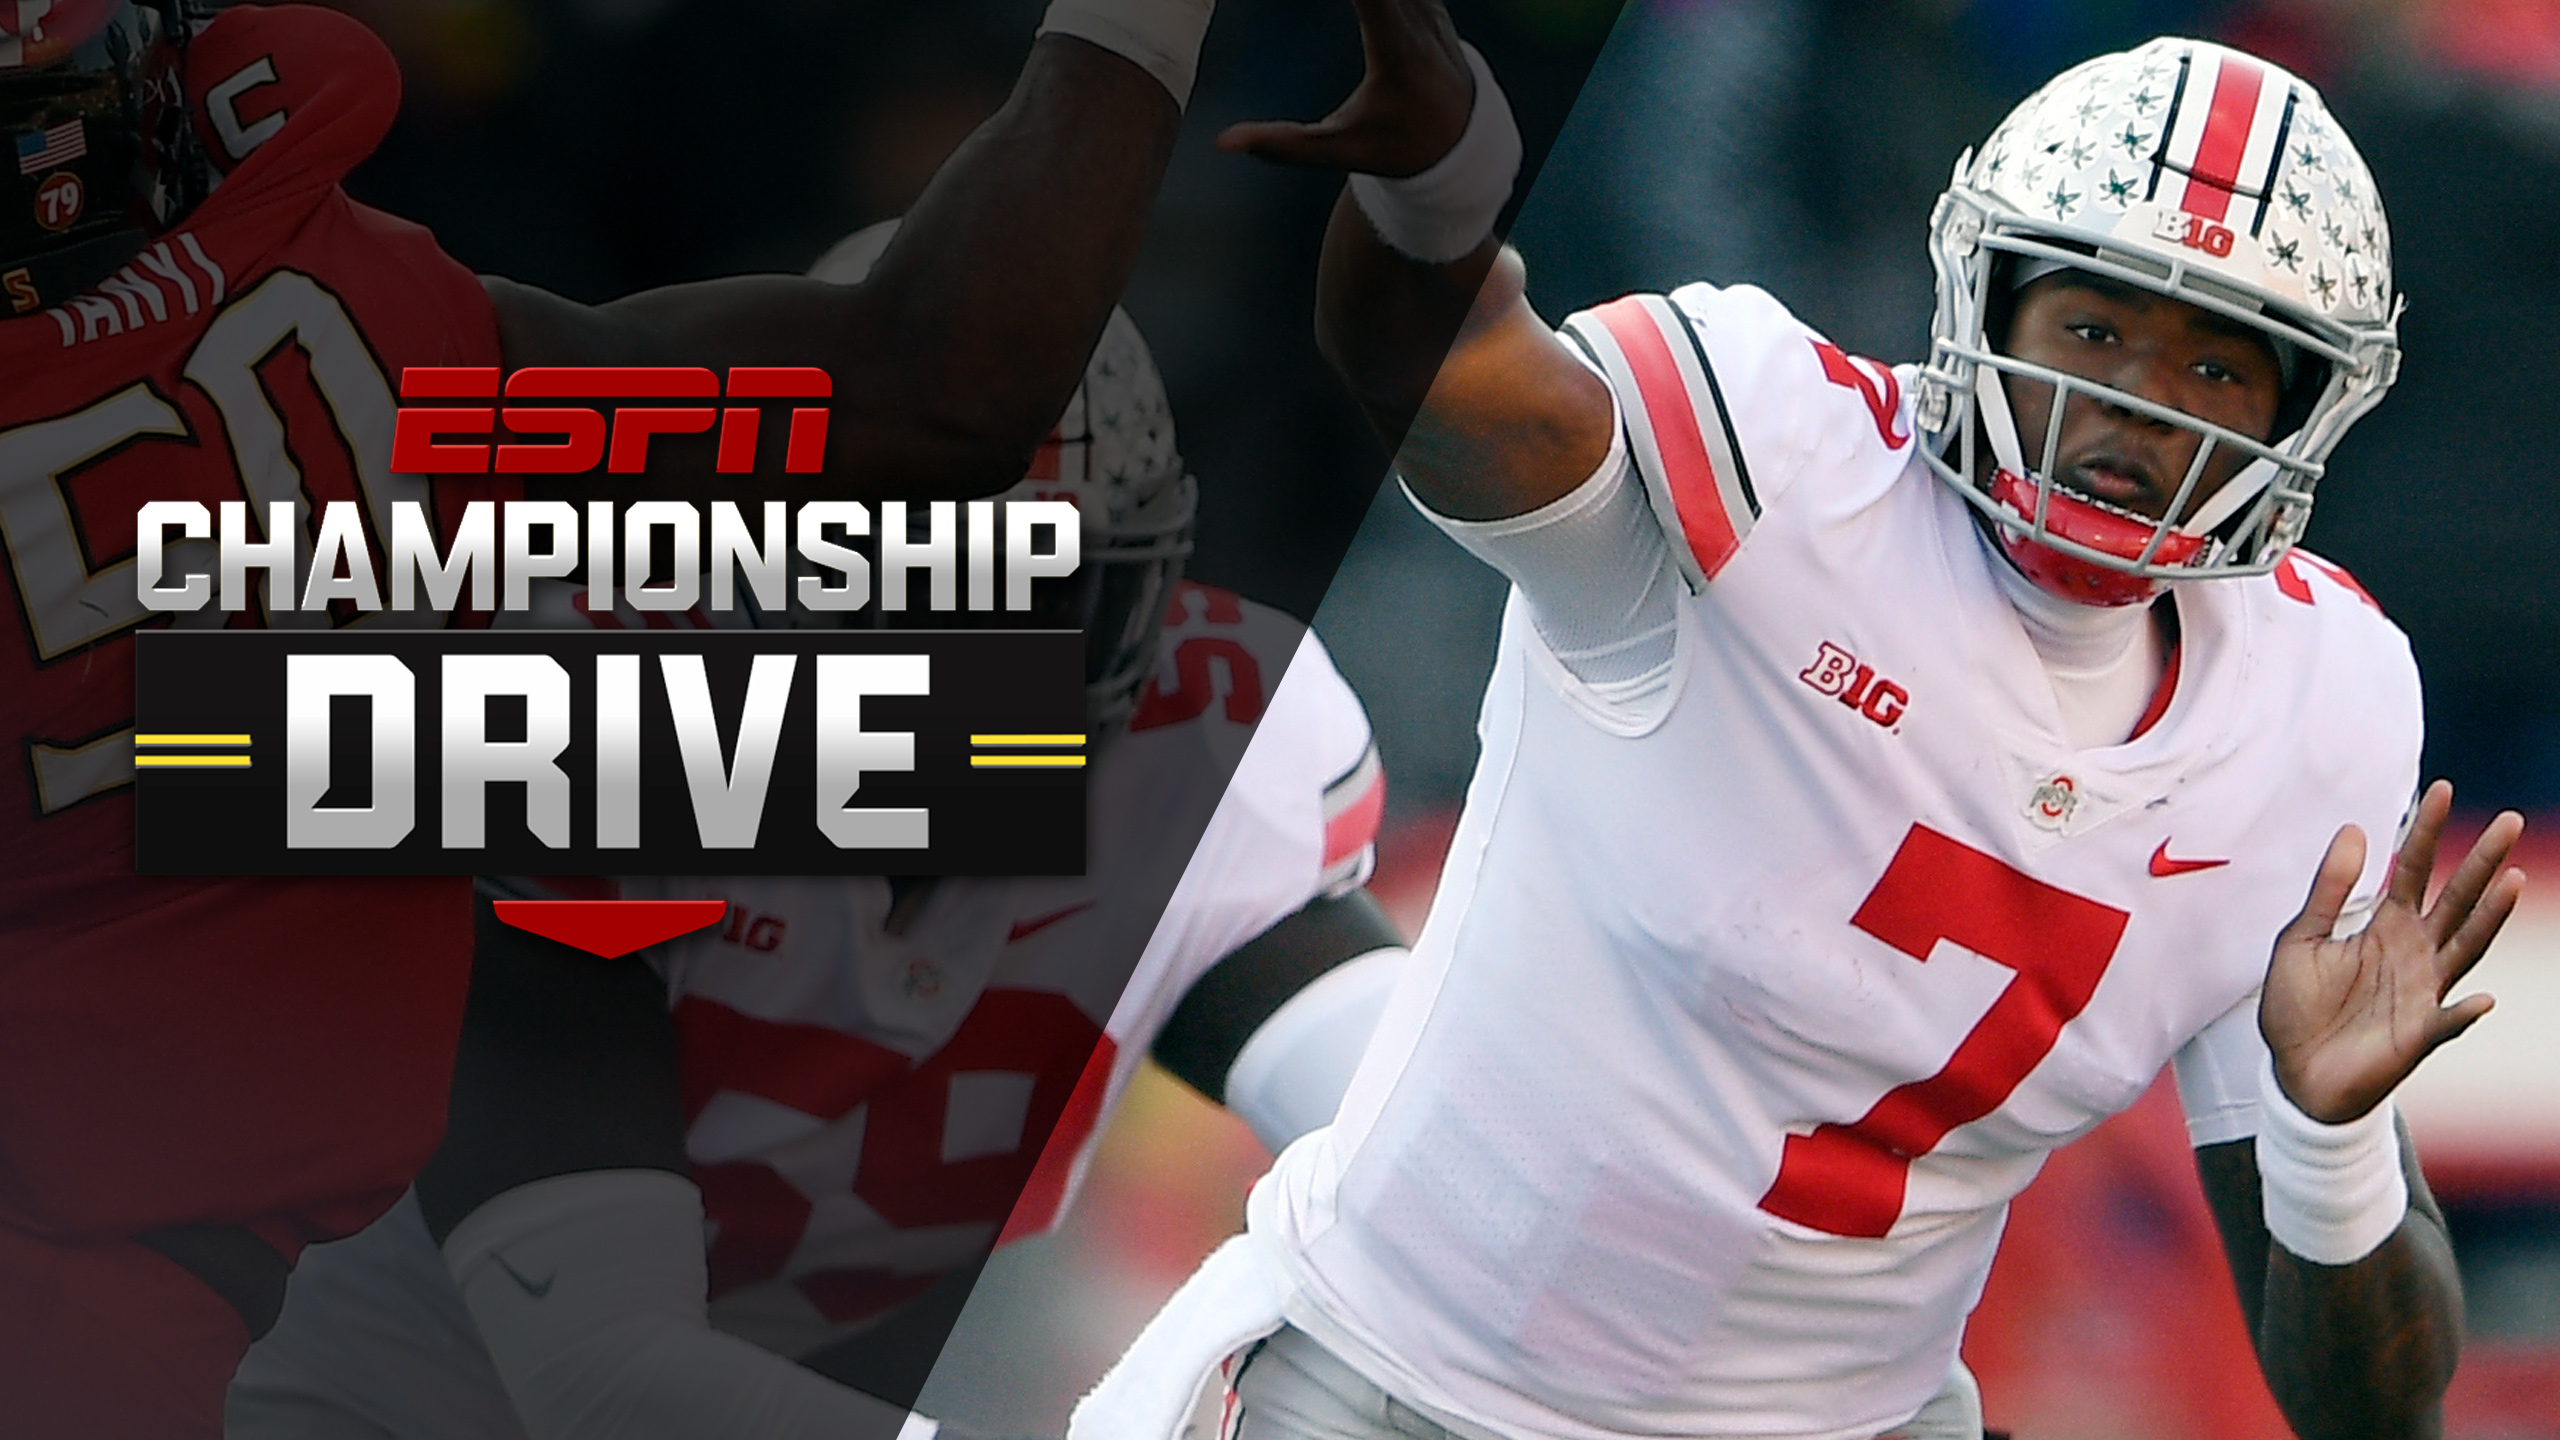 Sun, 11/18 - Championship Drive: Who's In? Presented by Goodyear